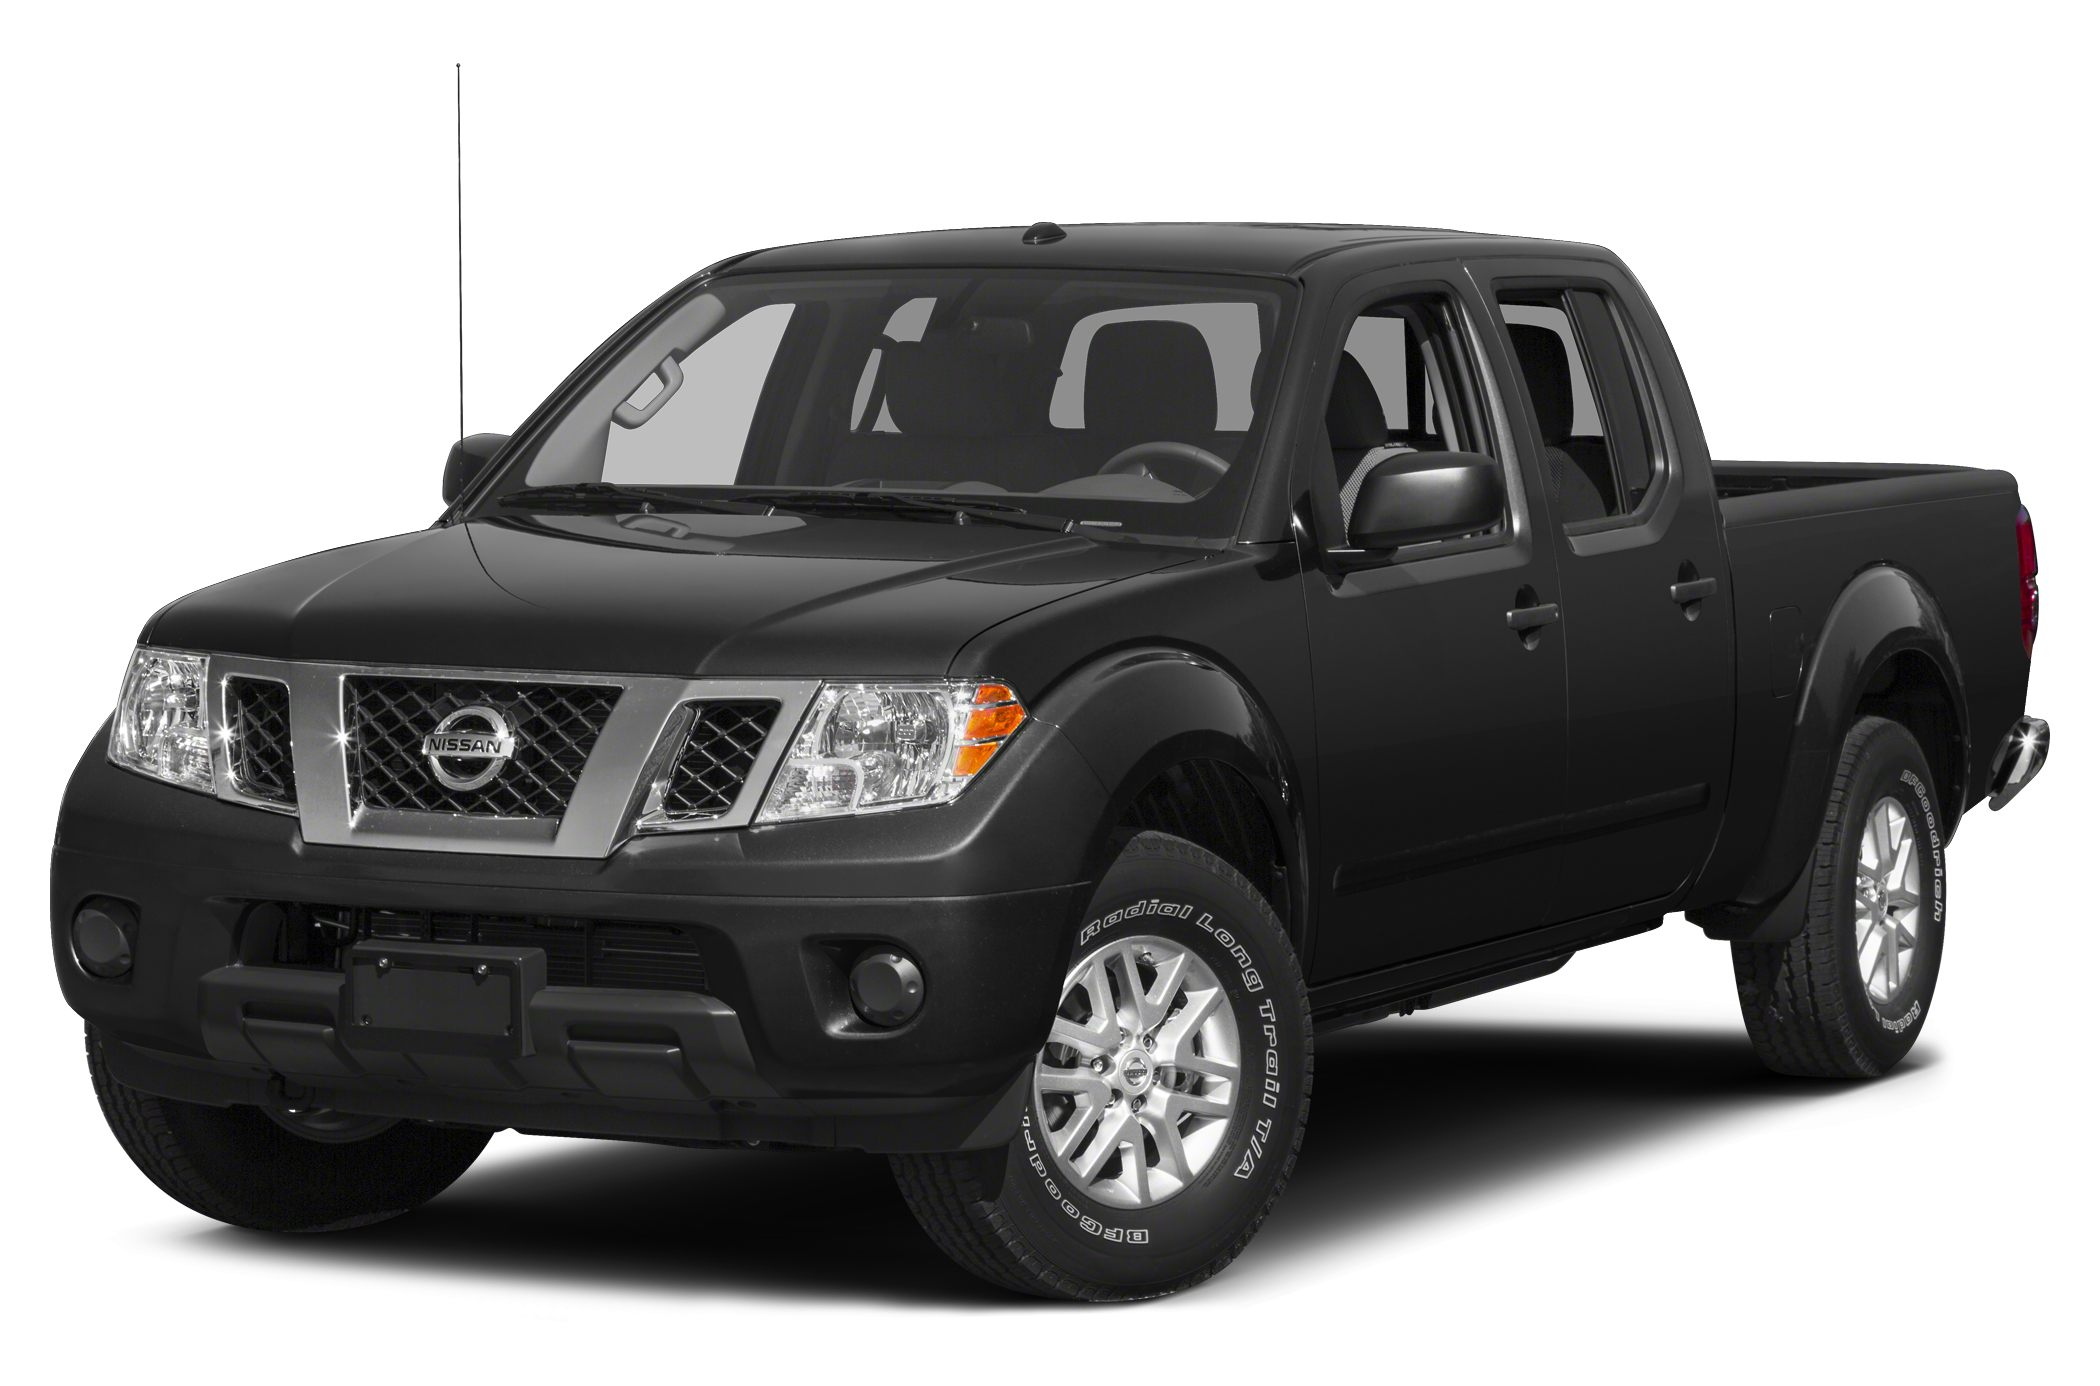 2015 Nissan Frontier SV Extended Cab Pickup for sale in Selinsgrove for $26,081 with 3 miles.